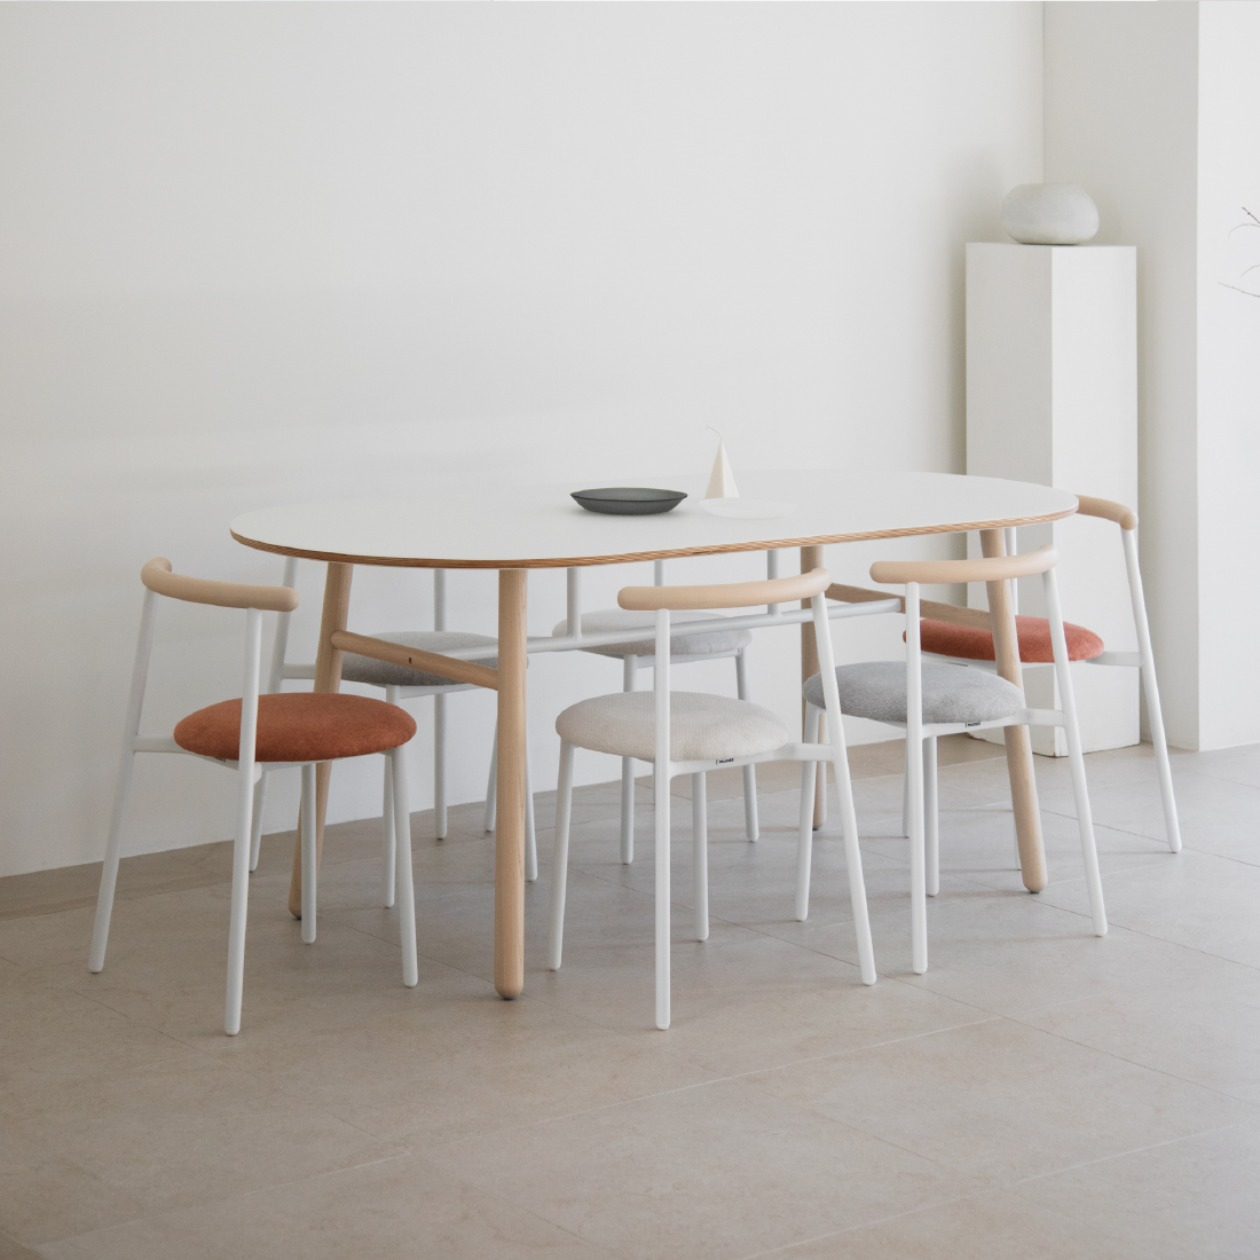 POLE TABLE / 1850X880